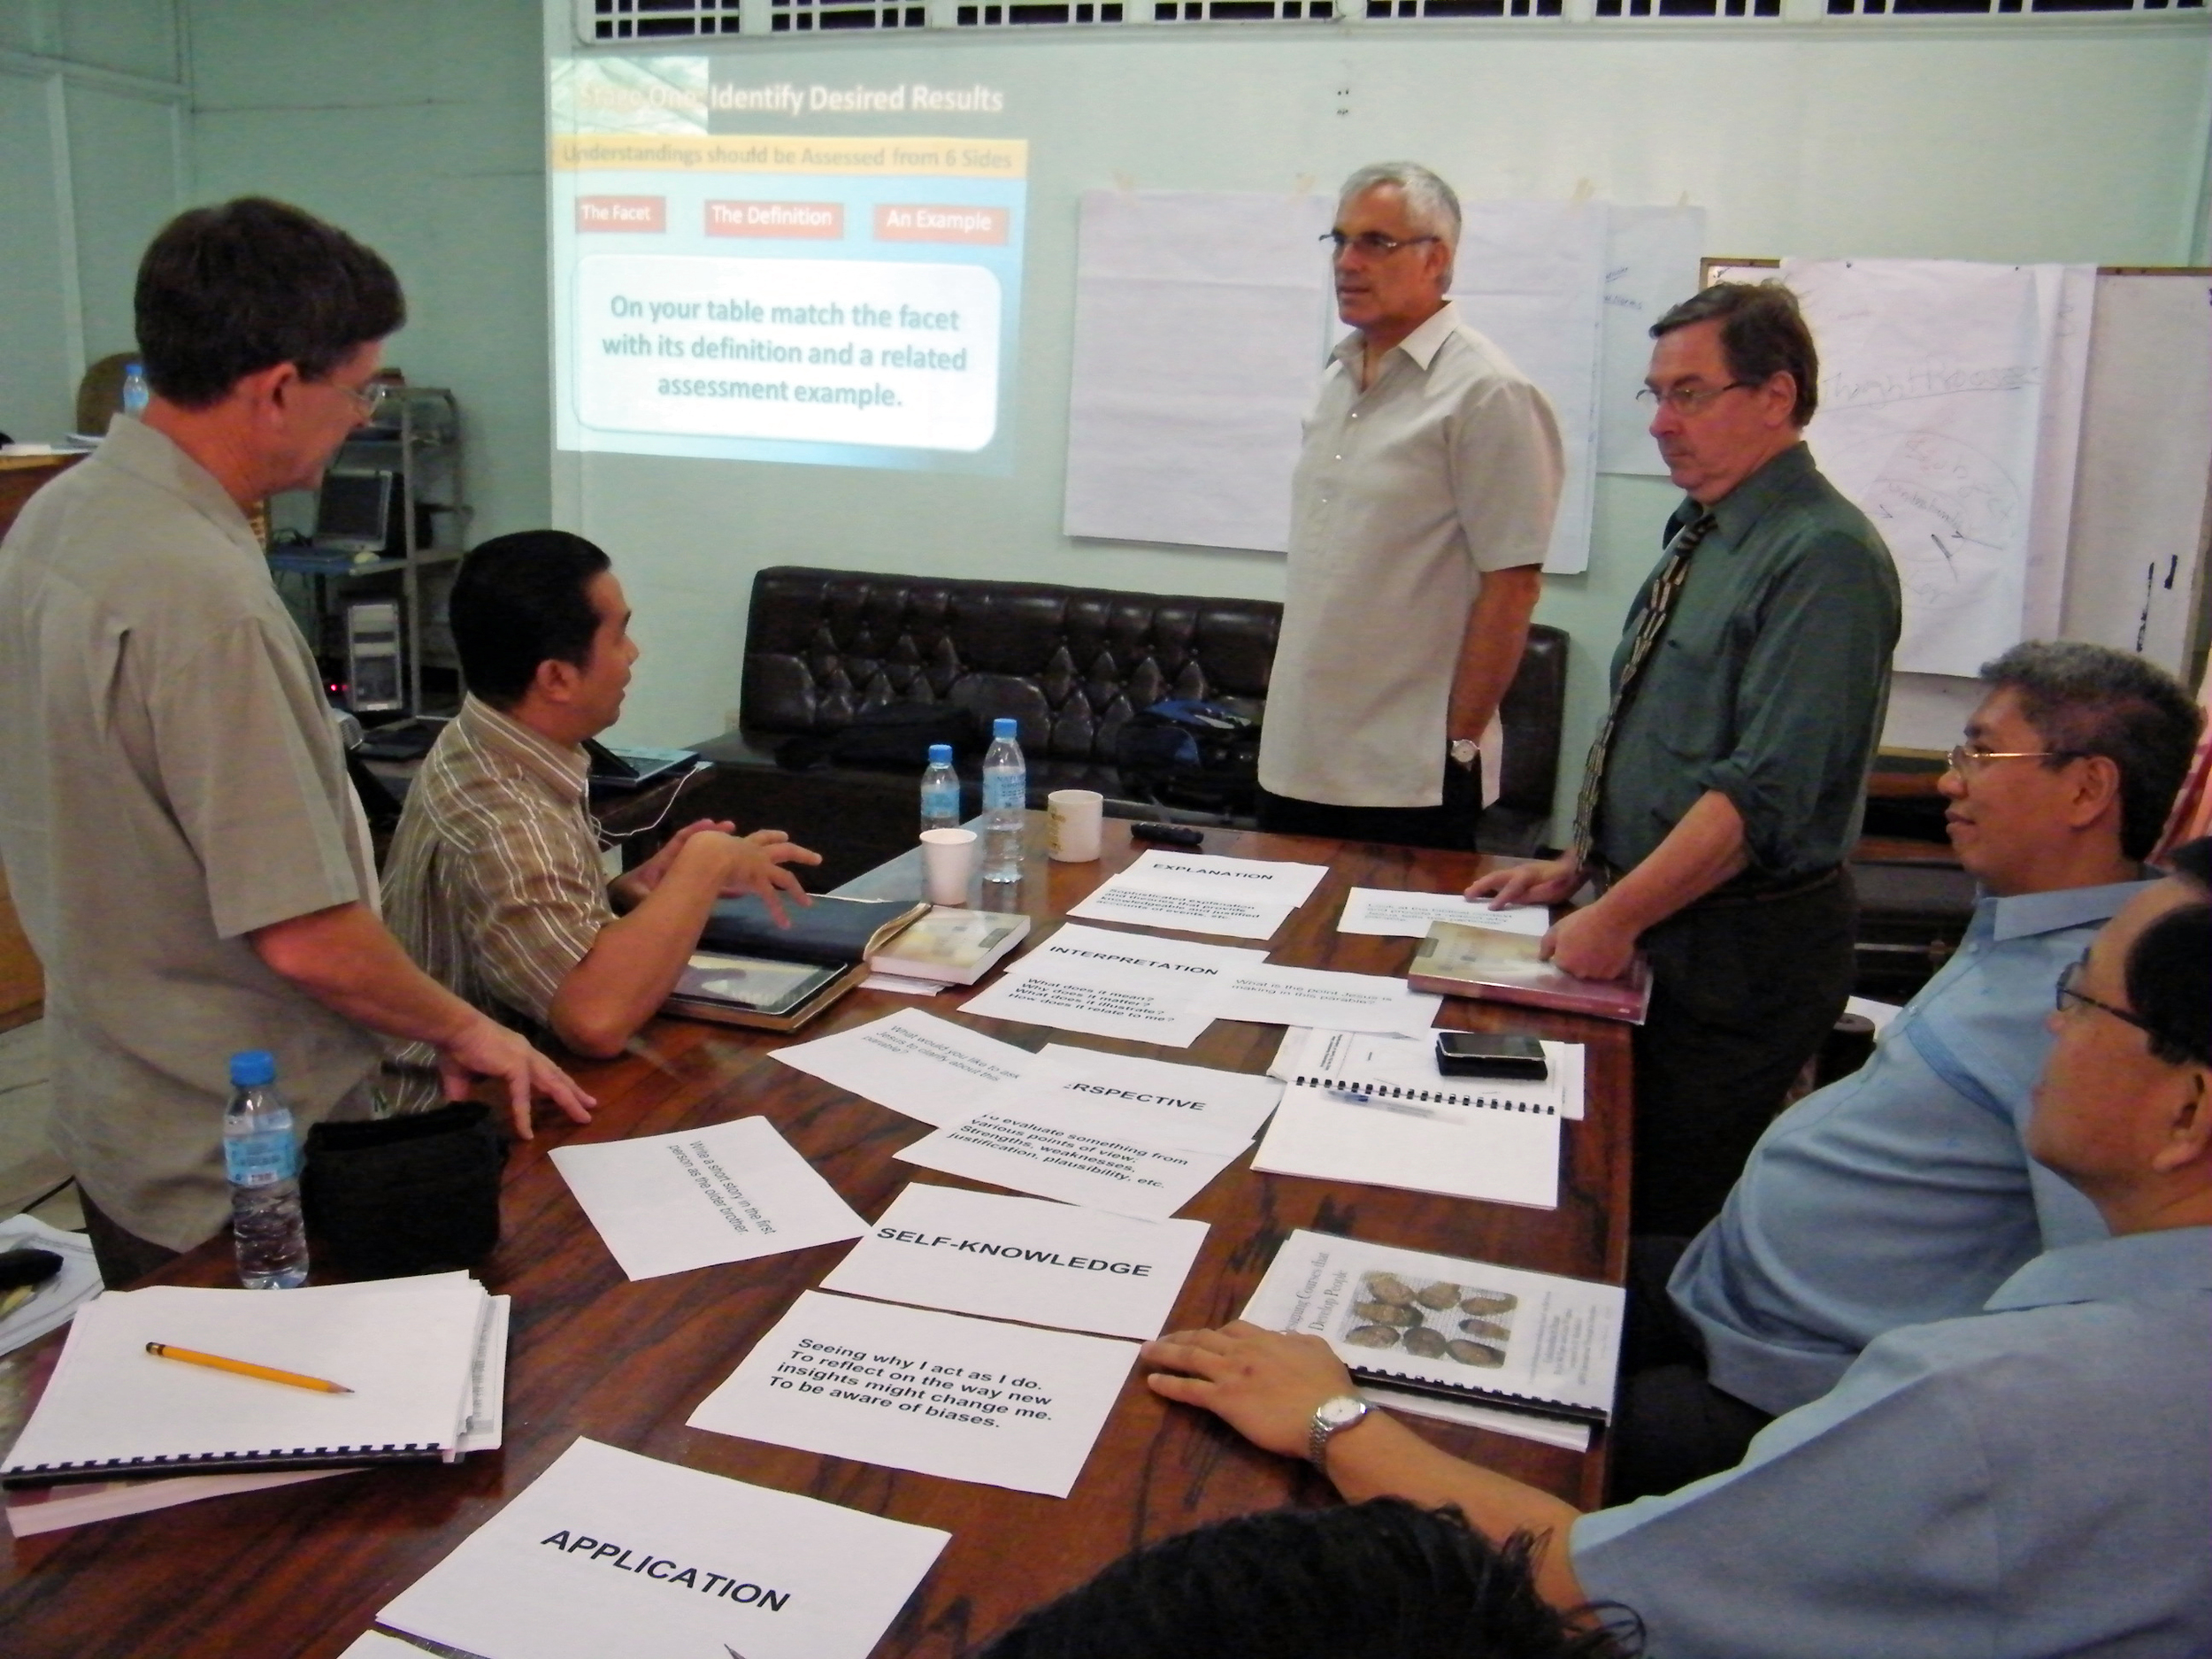 2010 Philippines UbD 1 Doane discussion.jpg